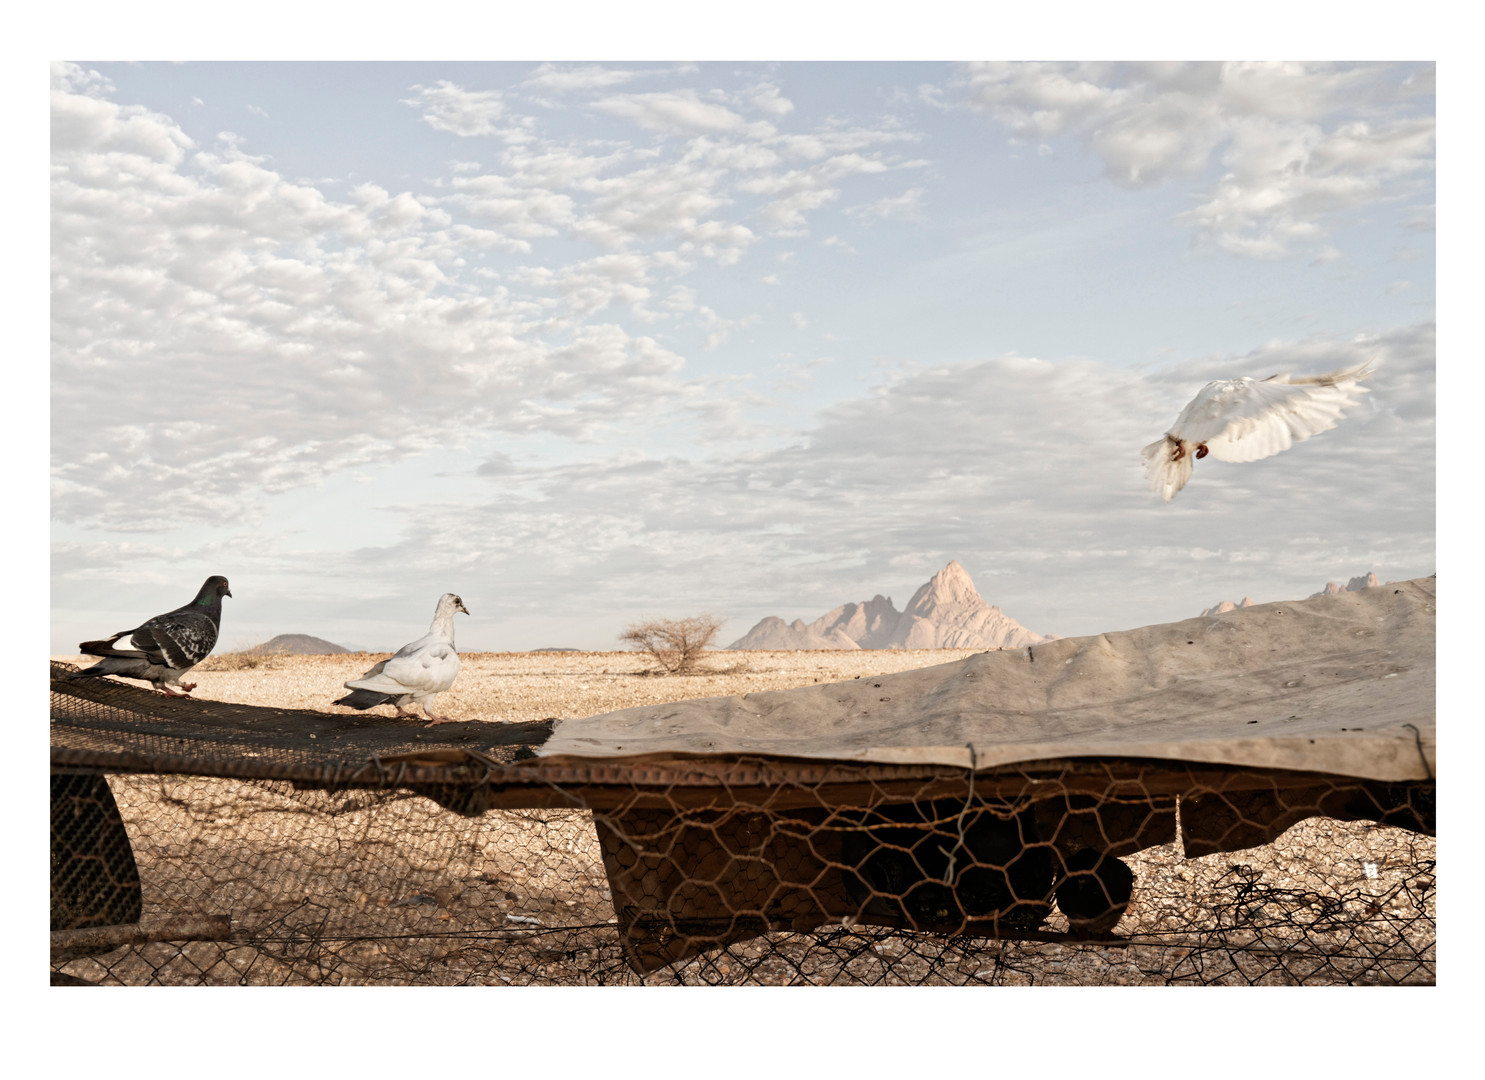 Margaret Courtney-Clarke | Black Ranch, Pos #3, Spitzkoppe, 25 December 2017 | 2017 | Giclée Print on Hahnemühle Photo Rag Paper | 49.5 x 74 cm | Edition of 6 + 2 AP